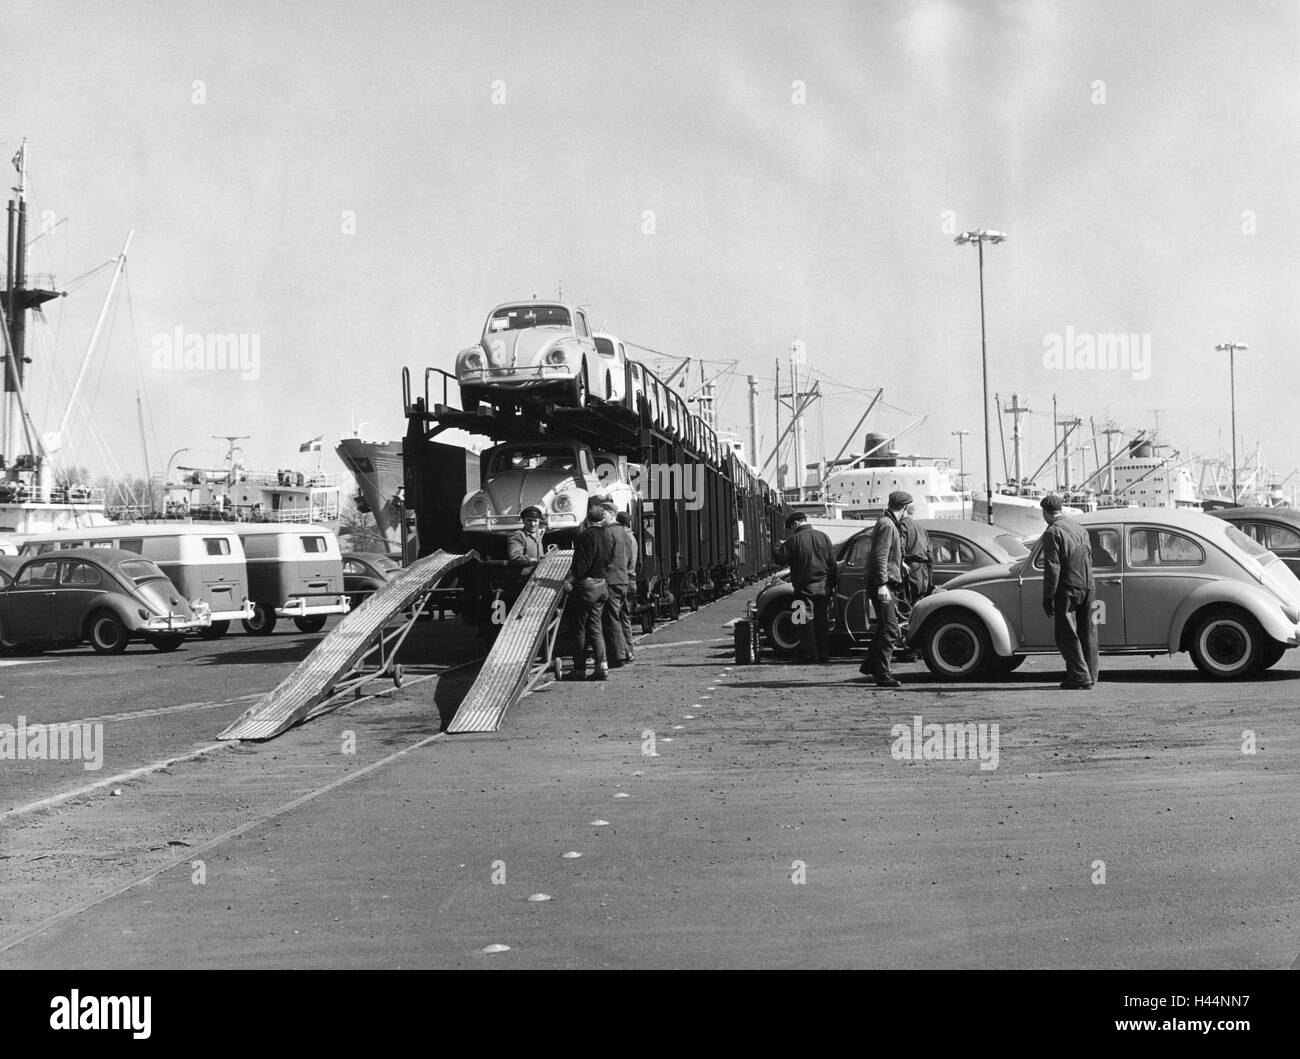 Germany, port, freight cars, workers, VW Beetle, loaded, economy, auto industry, cargo port, road transport, trade, - Stock Image